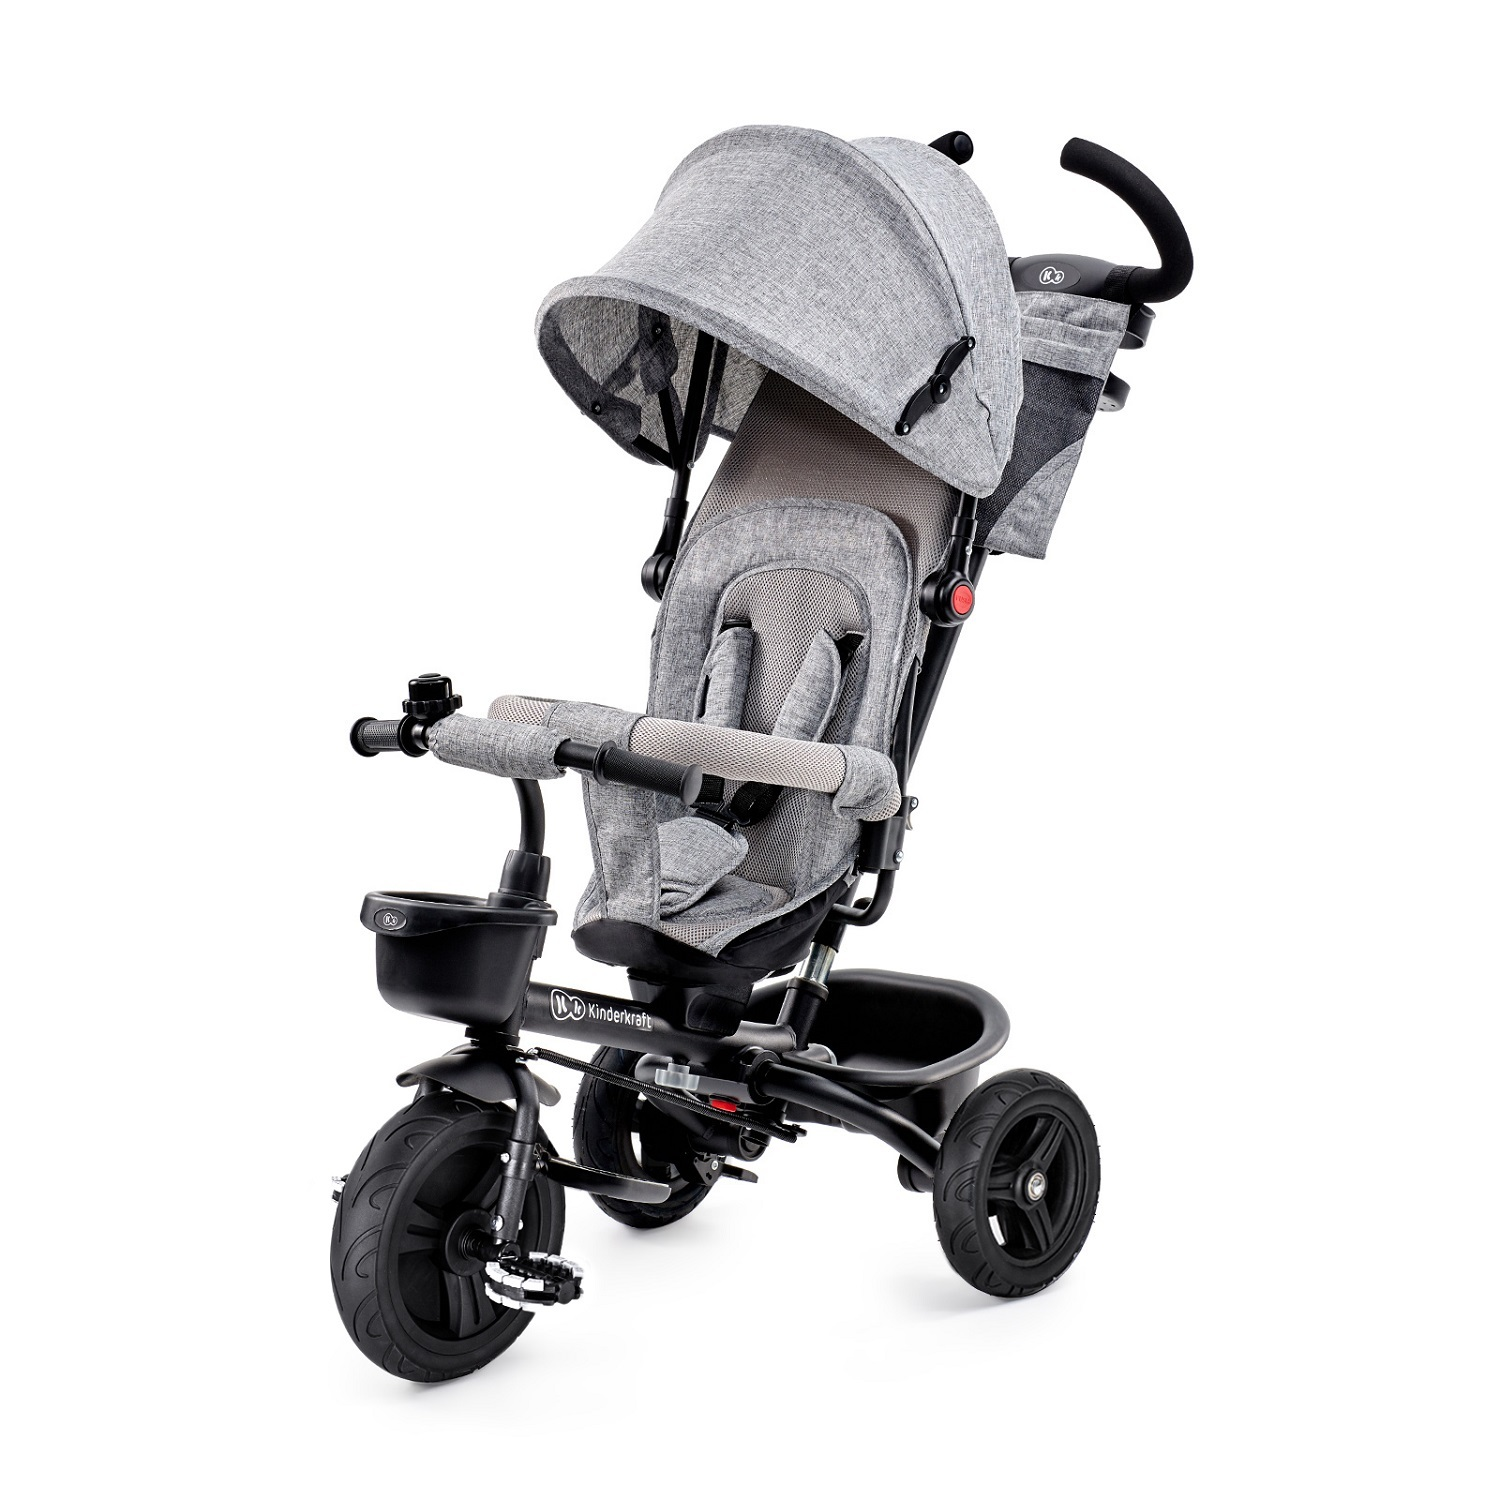 Велосипед Kinderkraft Aveo Grey складной